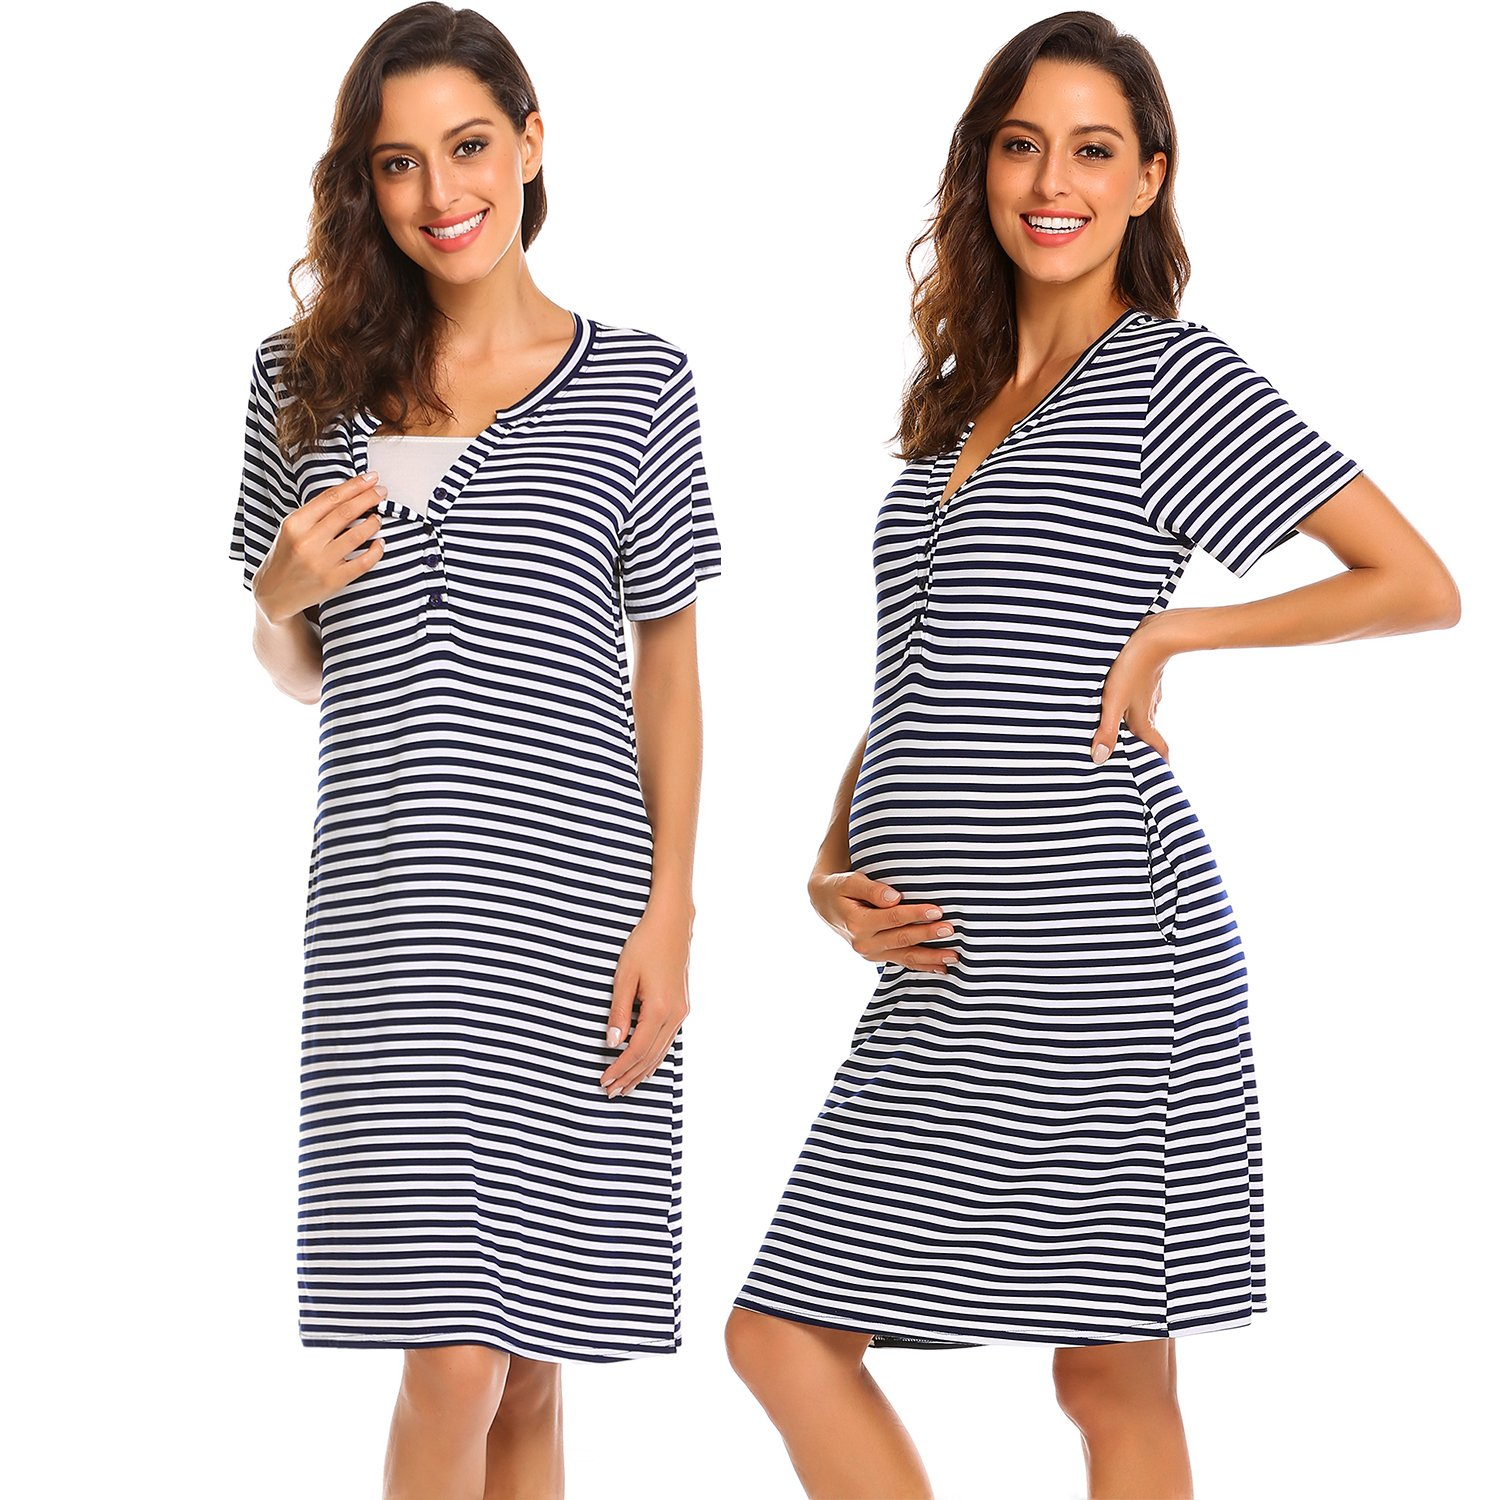 Ekouaer Women Short/Long Sleeve Nightgown Striped Nursing Nightgown Breastfeeding Sleep Dress KSK008909